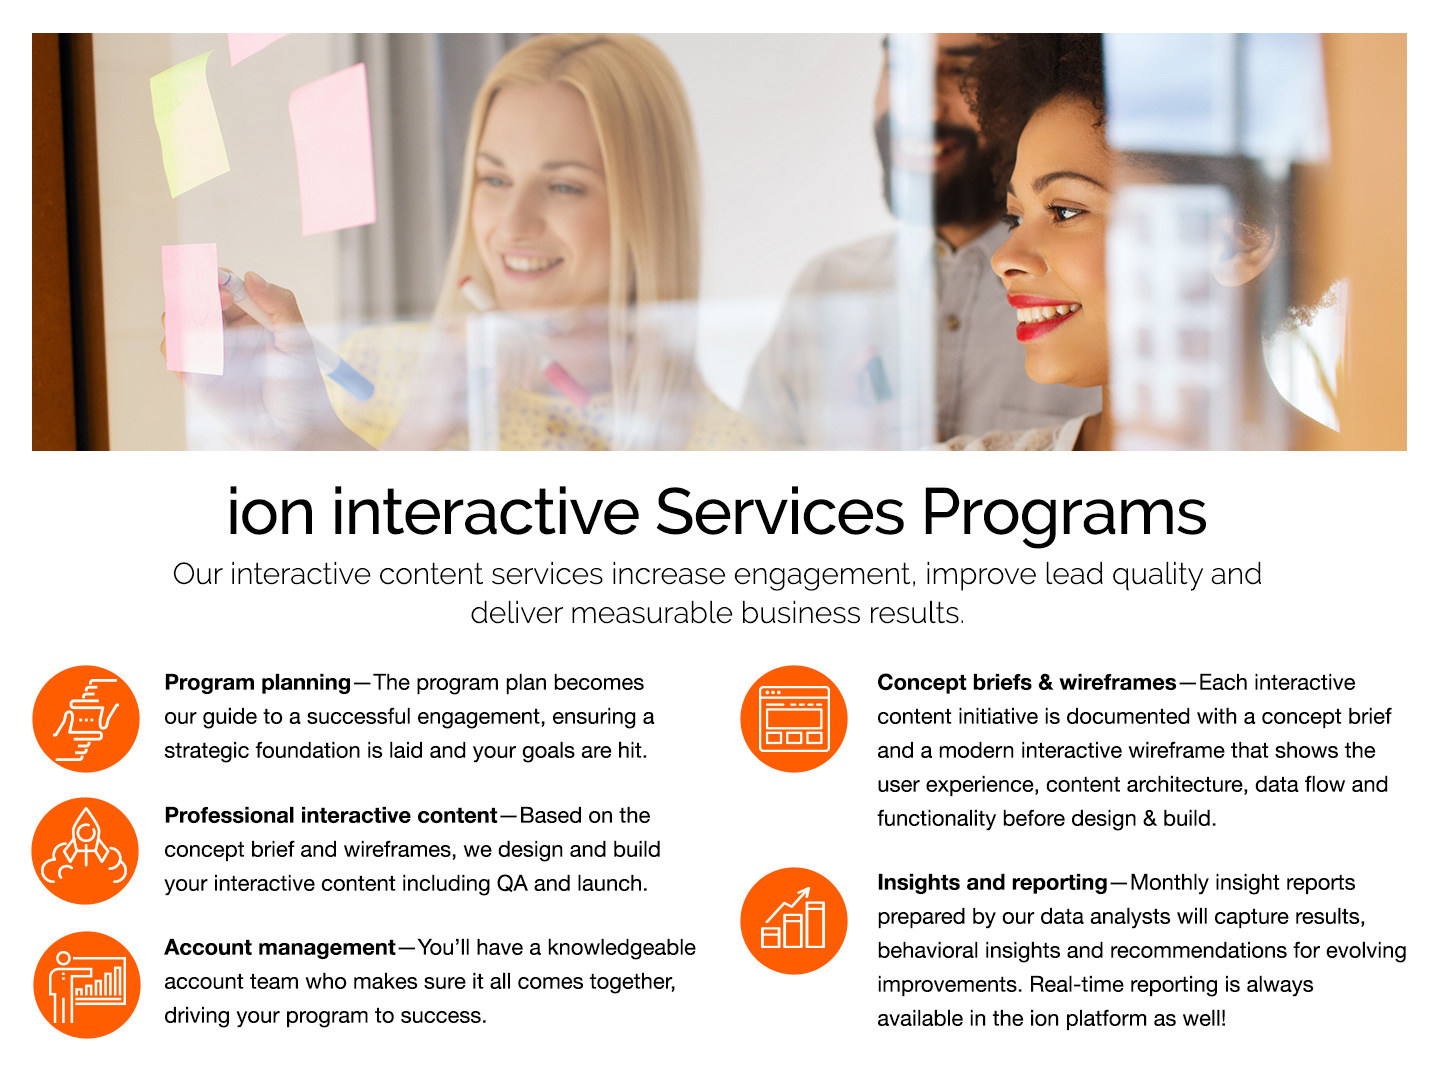 ion interactive Demo - ion's Services Programs